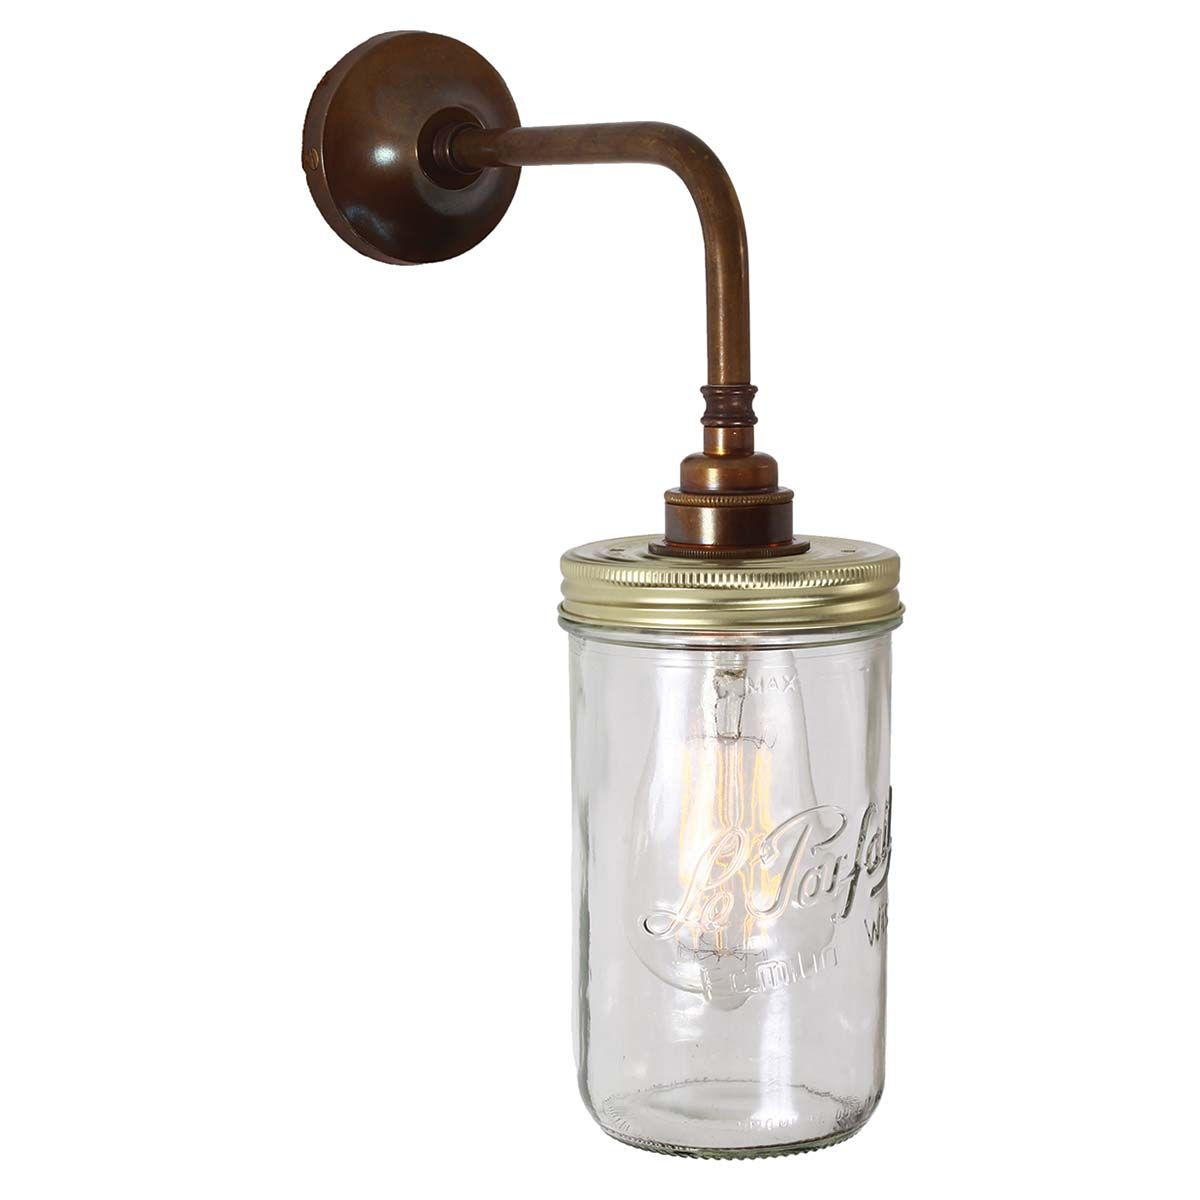 Applique murale bocal Le Parfait en verre et laiton Jam Jar Mullan Lighting